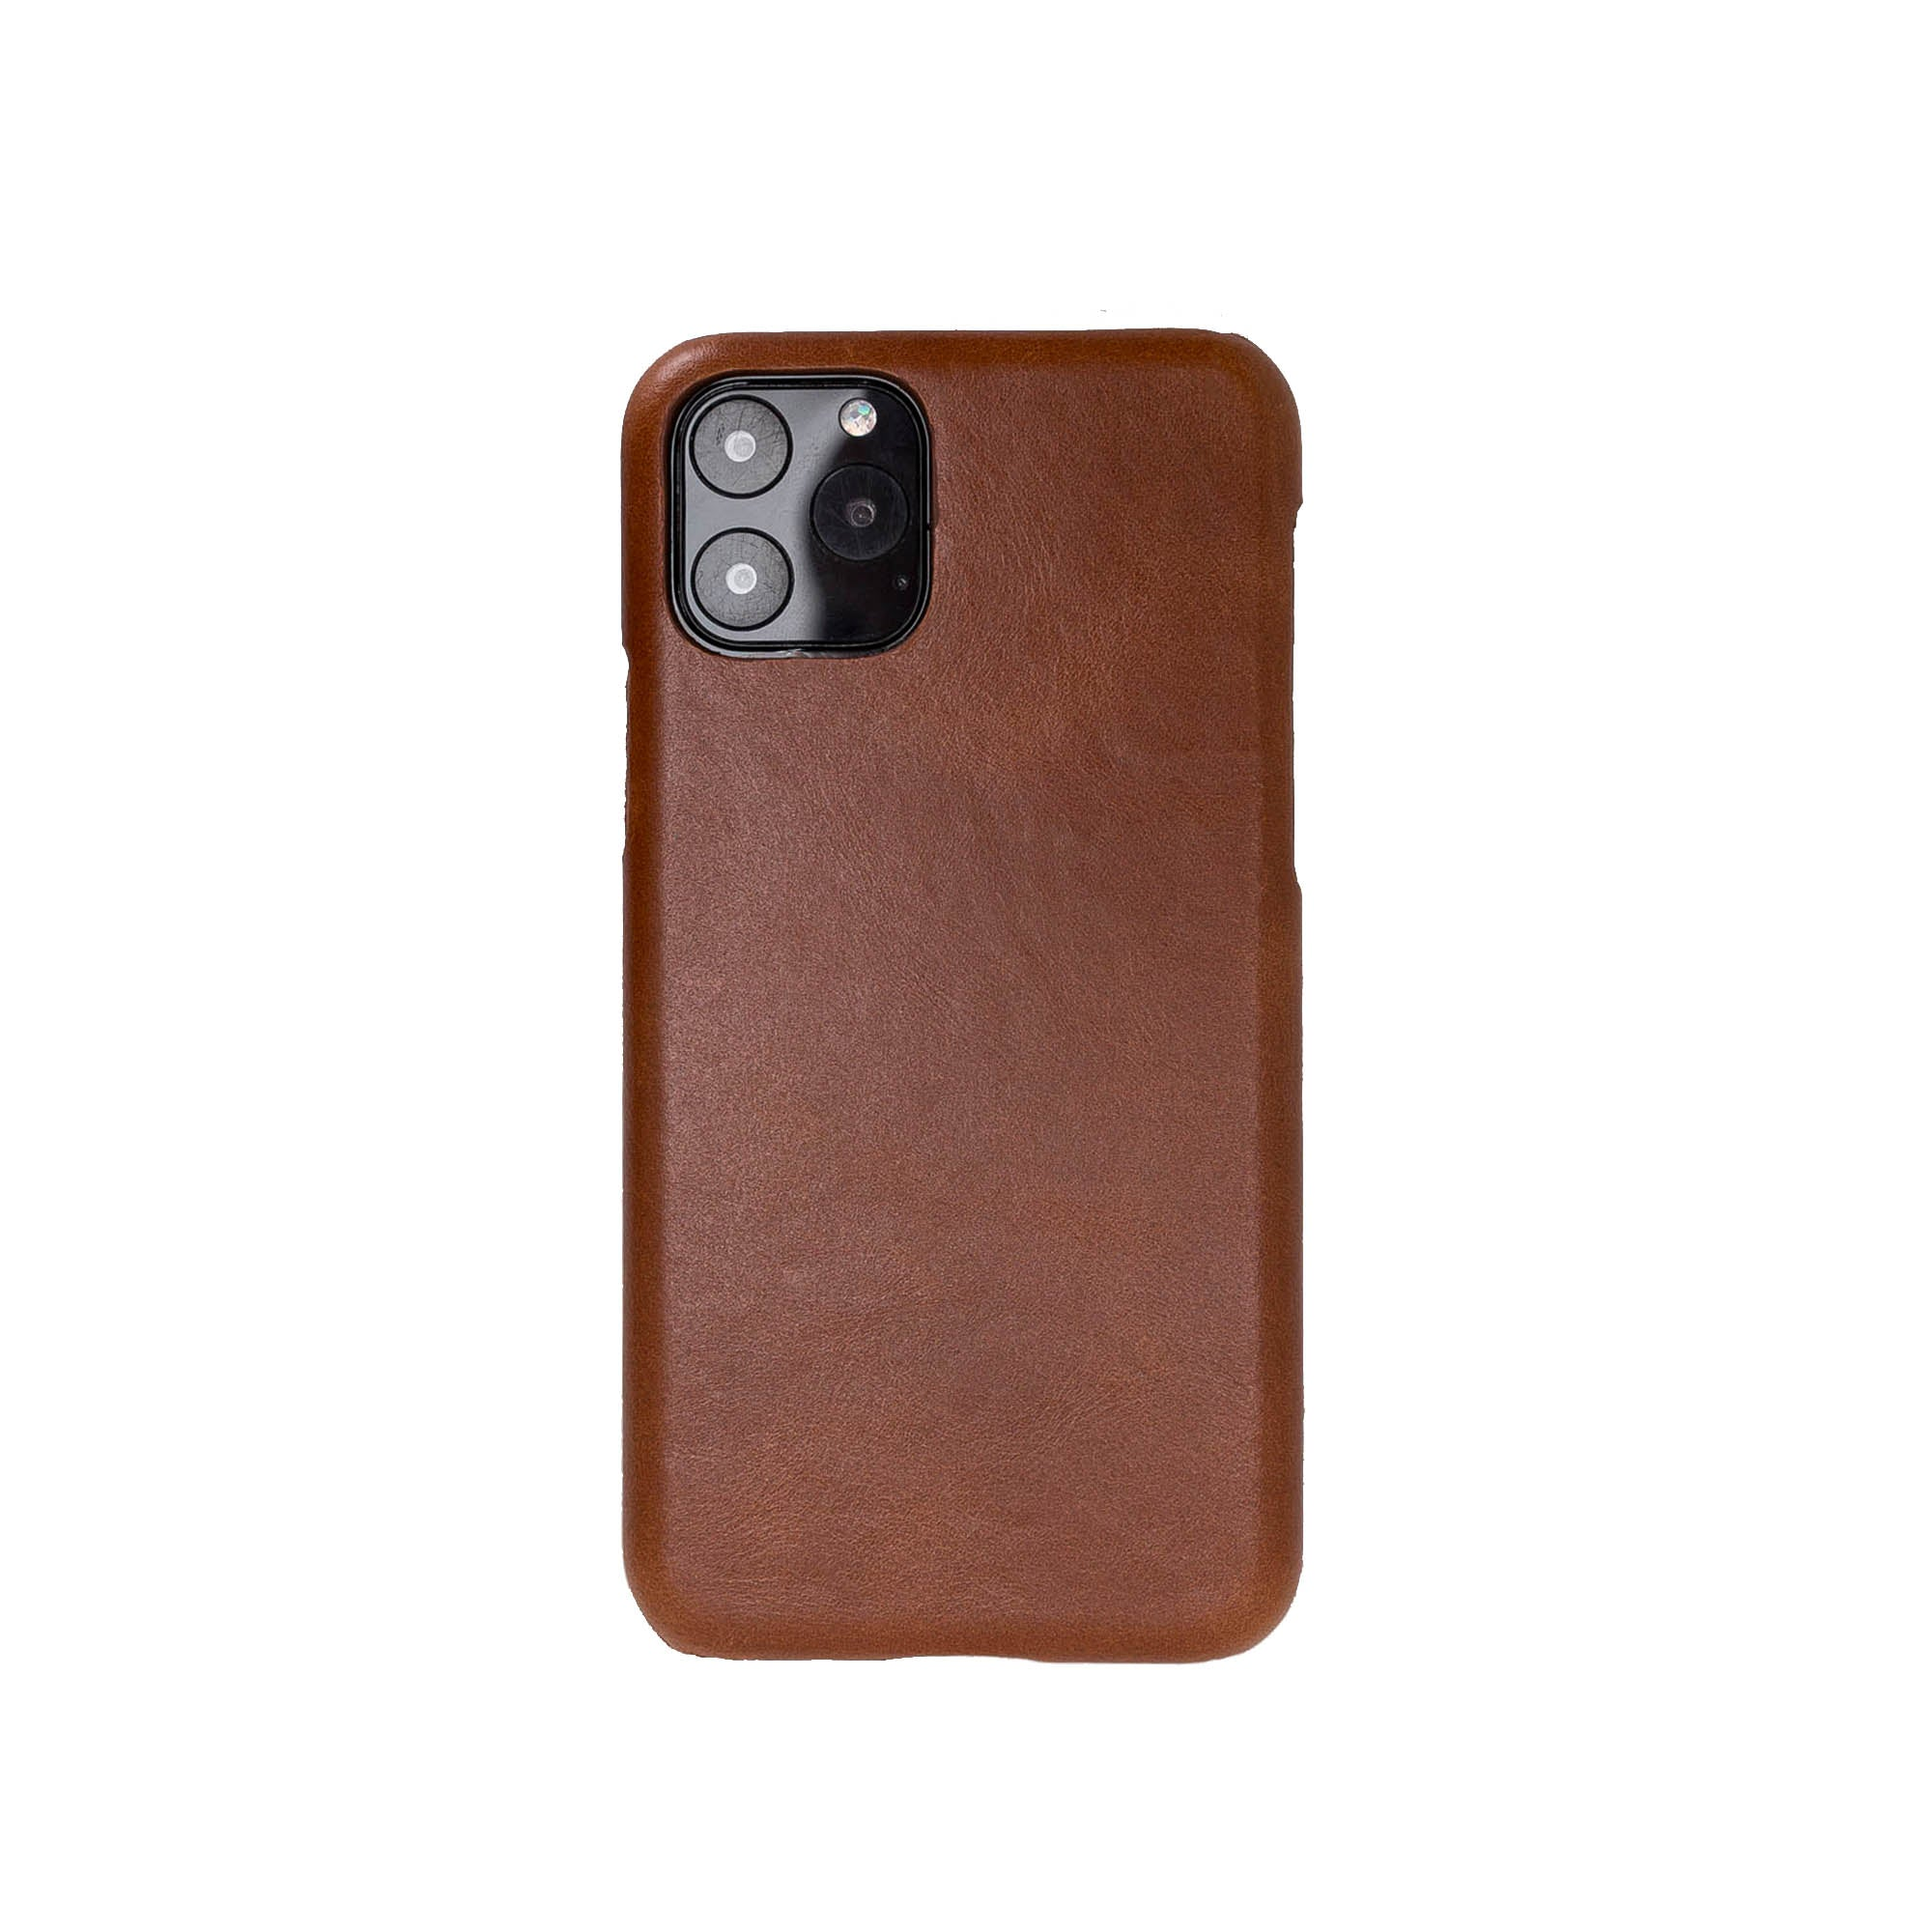 "Ultimate Jacket Leather Phone Case for iPhone 11 Pro (5.8"") - TAN - saracleather"